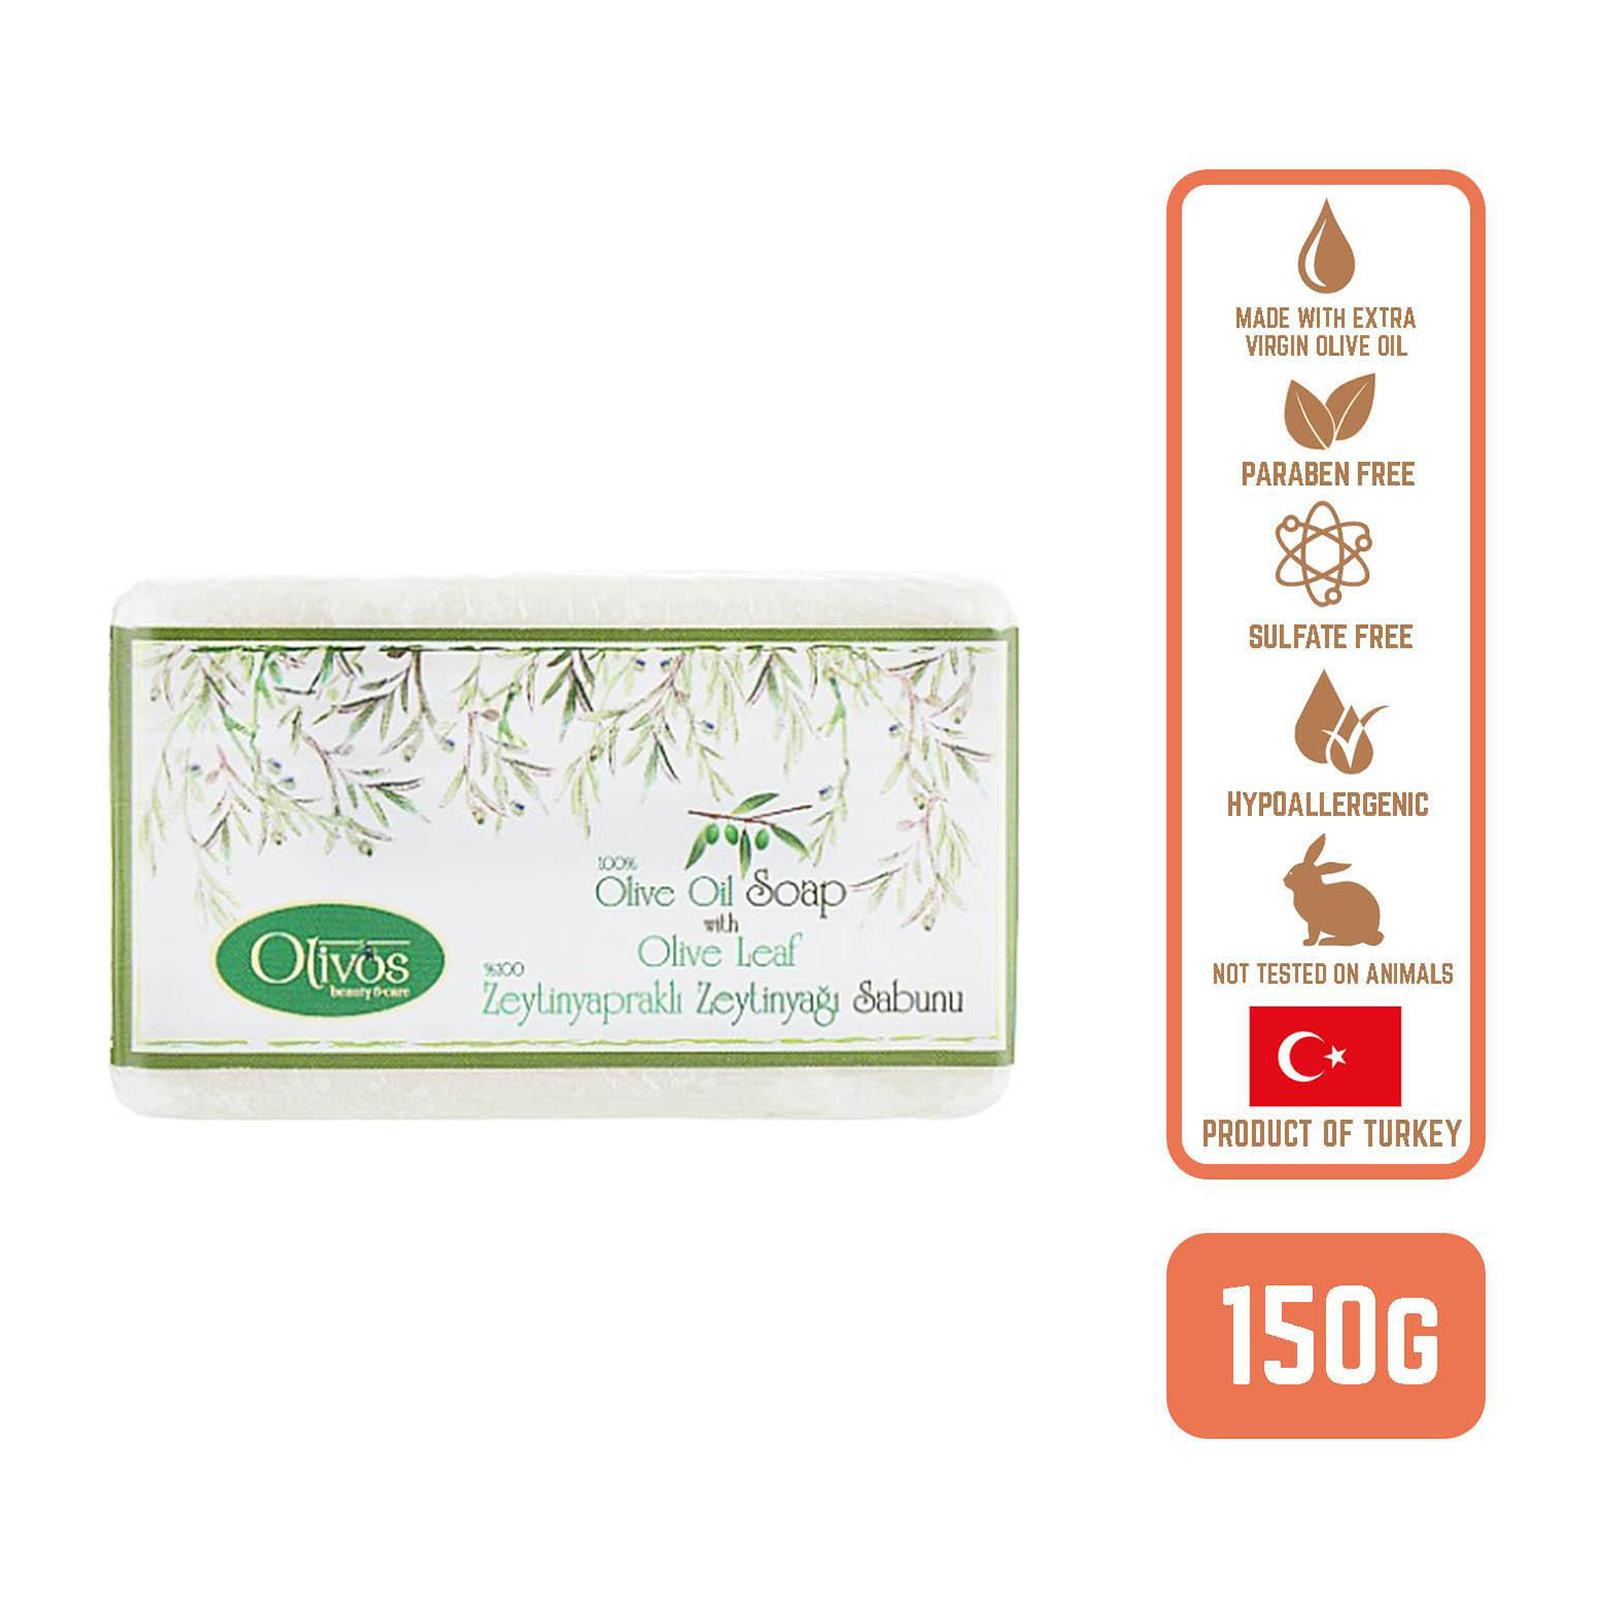 Olivos Olive Oil Classic Olive Oil Soap with Olive Leaf